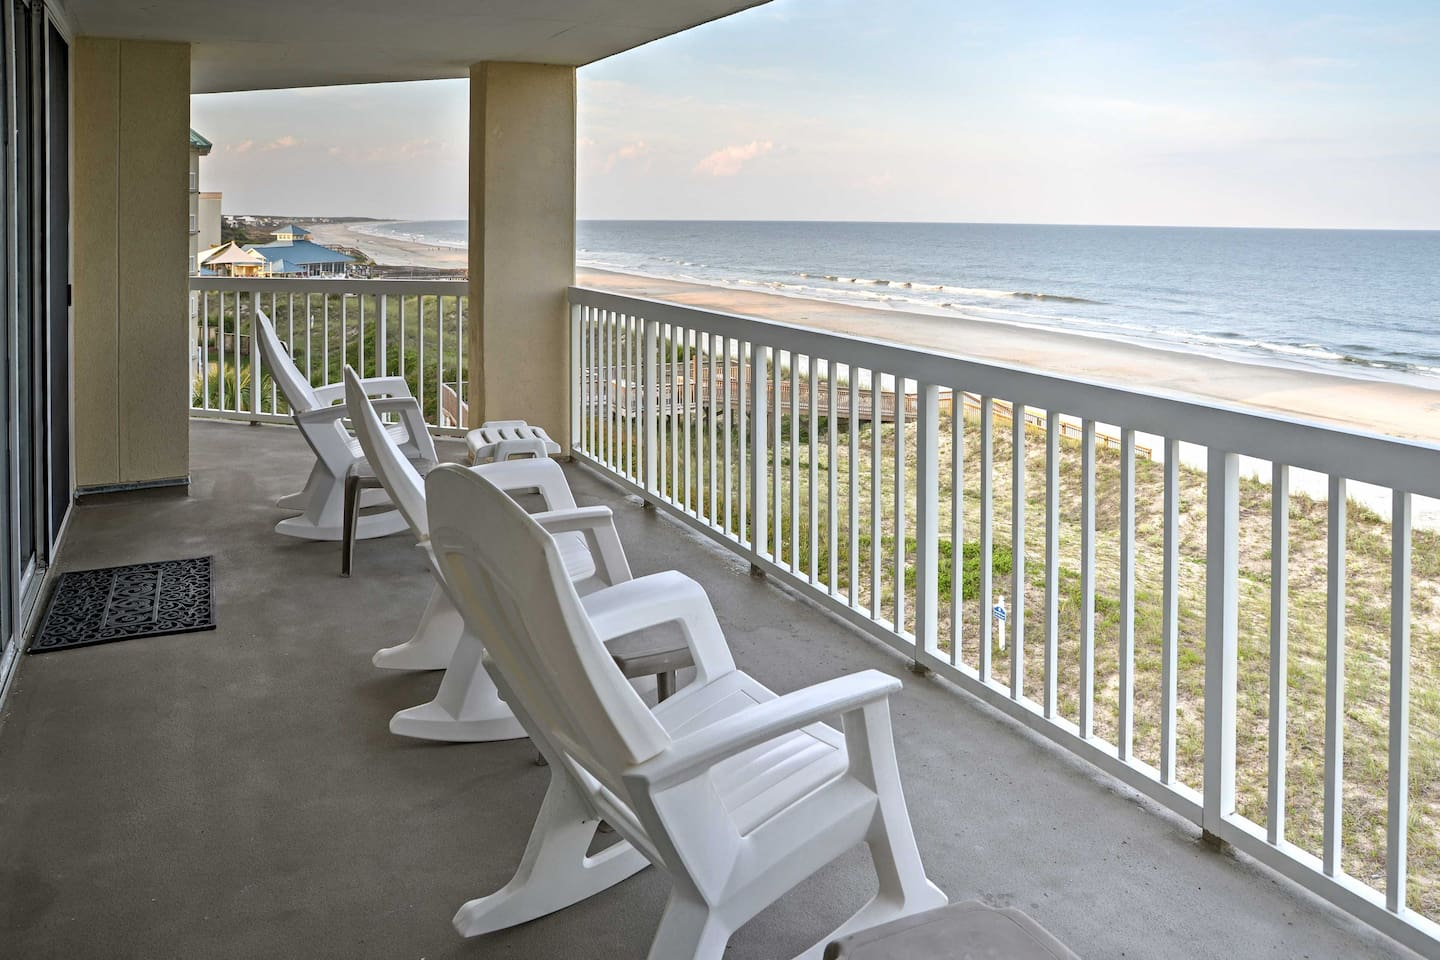 The ultimate beach retreat awaits you at this oceanfront 3-bedroom vacation rental condo in Pawleys Island!